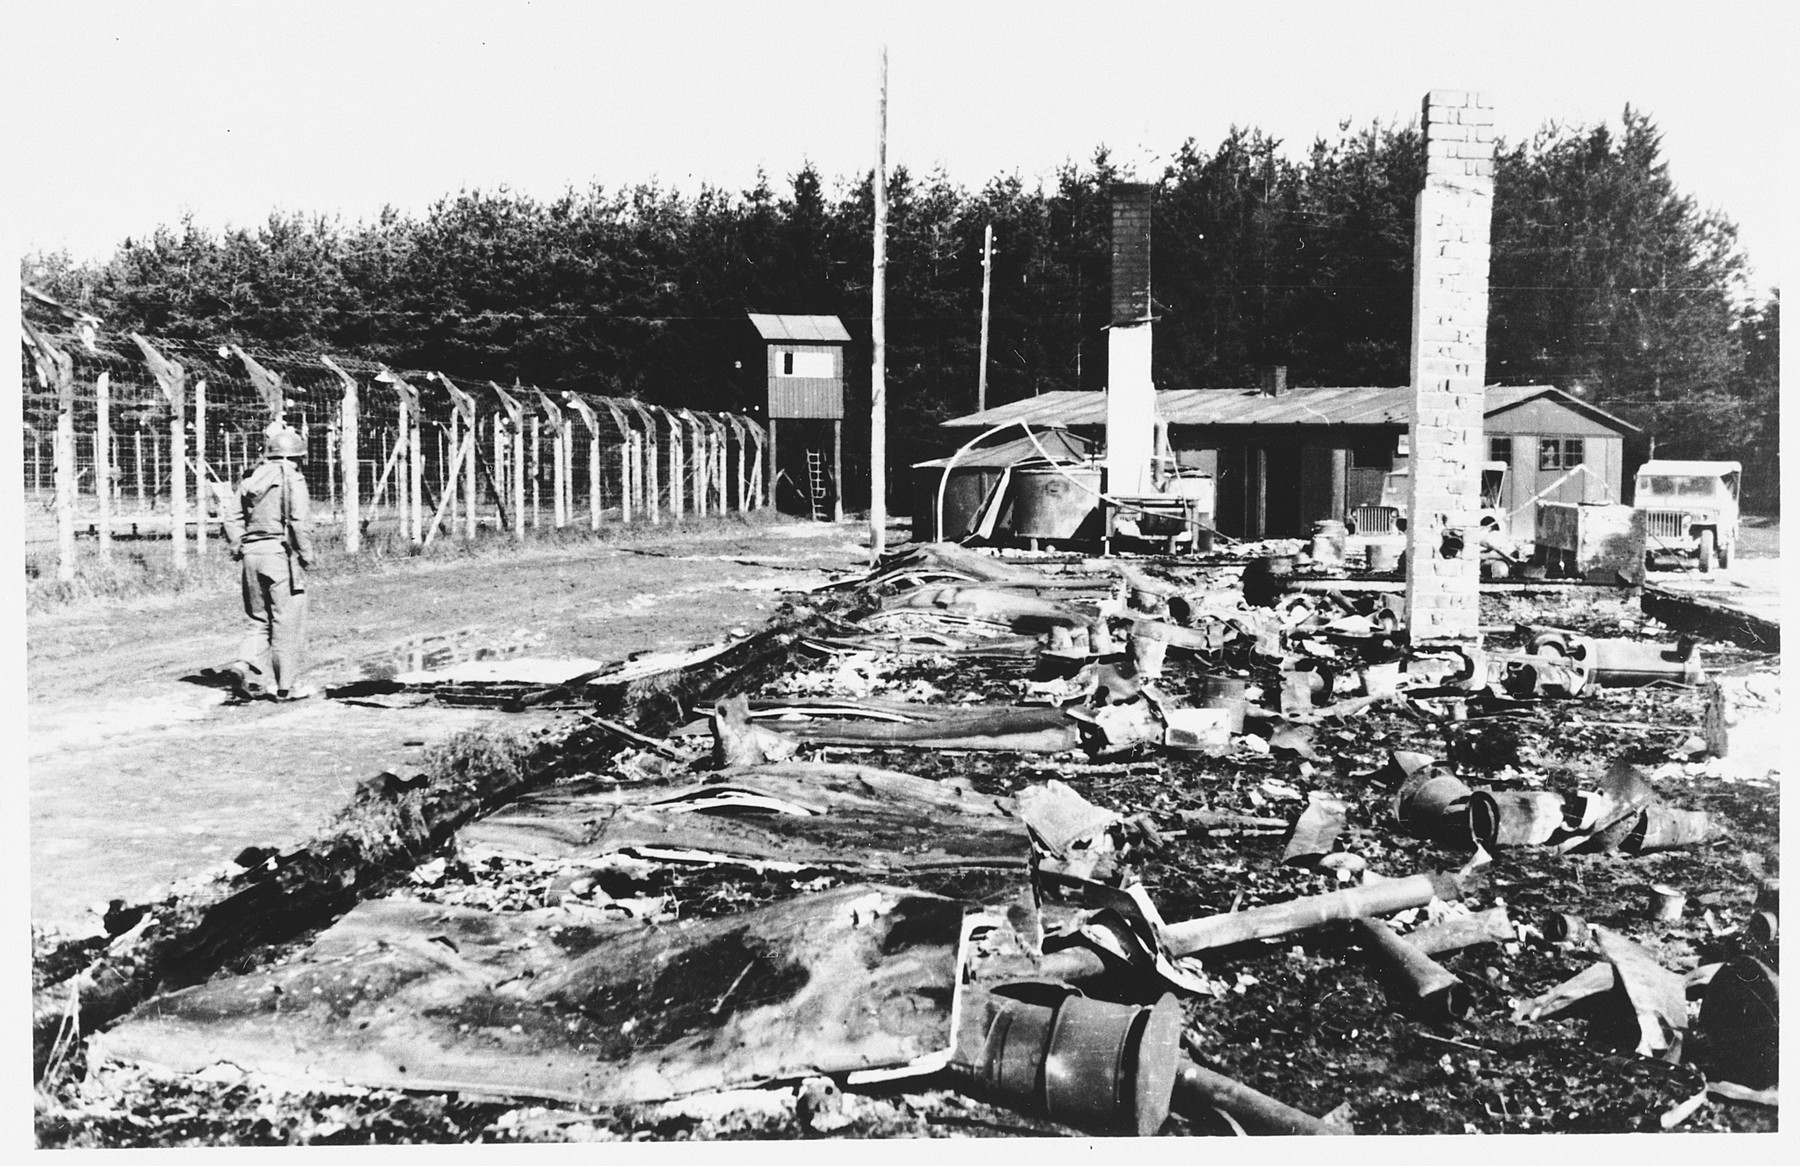 View of the ruins of a barracks in the Hurlach concentration camp that was razed by the SS before the evacuation of the camp.